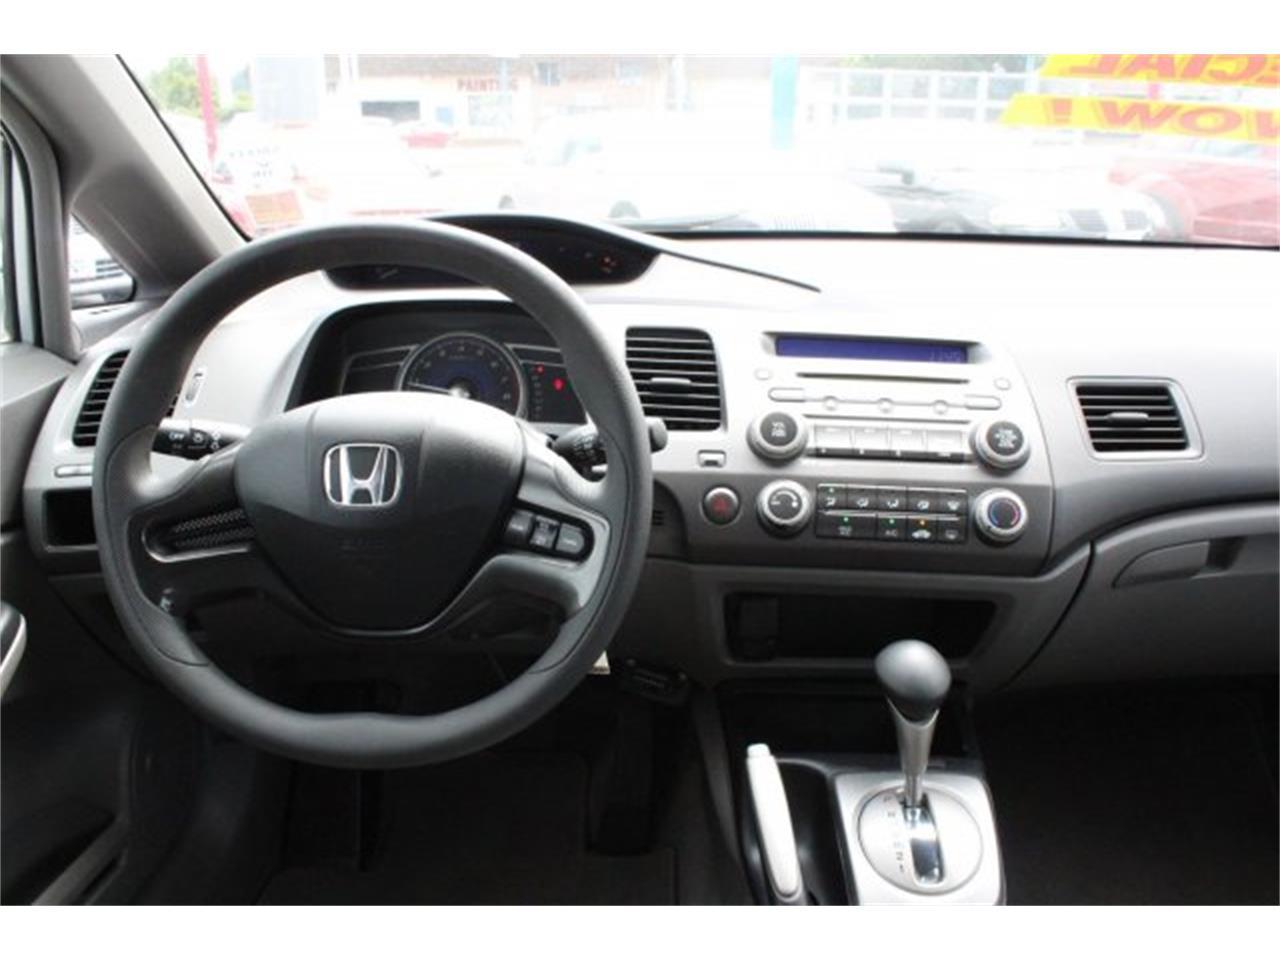 Large Picture of '07 Honda Civic located in Washington - L2WF